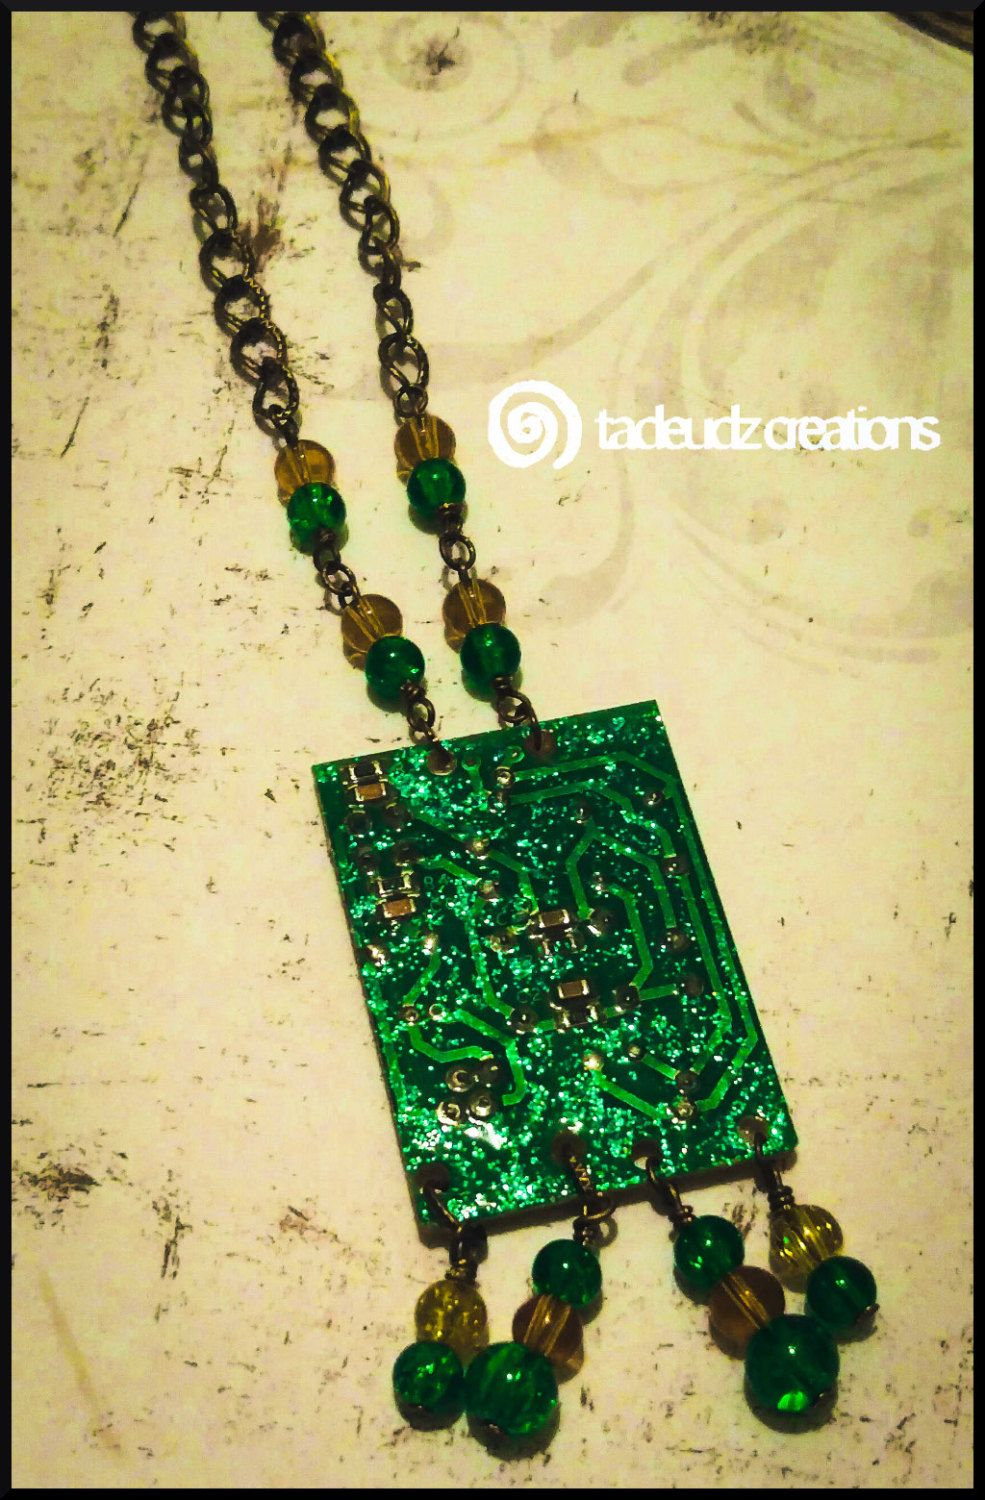 Bronze Glittery Upcyled Beaded Circuit Board Pendant Cyberpunk By Old Boards Upcycled Into Jewels Recycled Electronic Waste Tadeudzcreations On Etsy